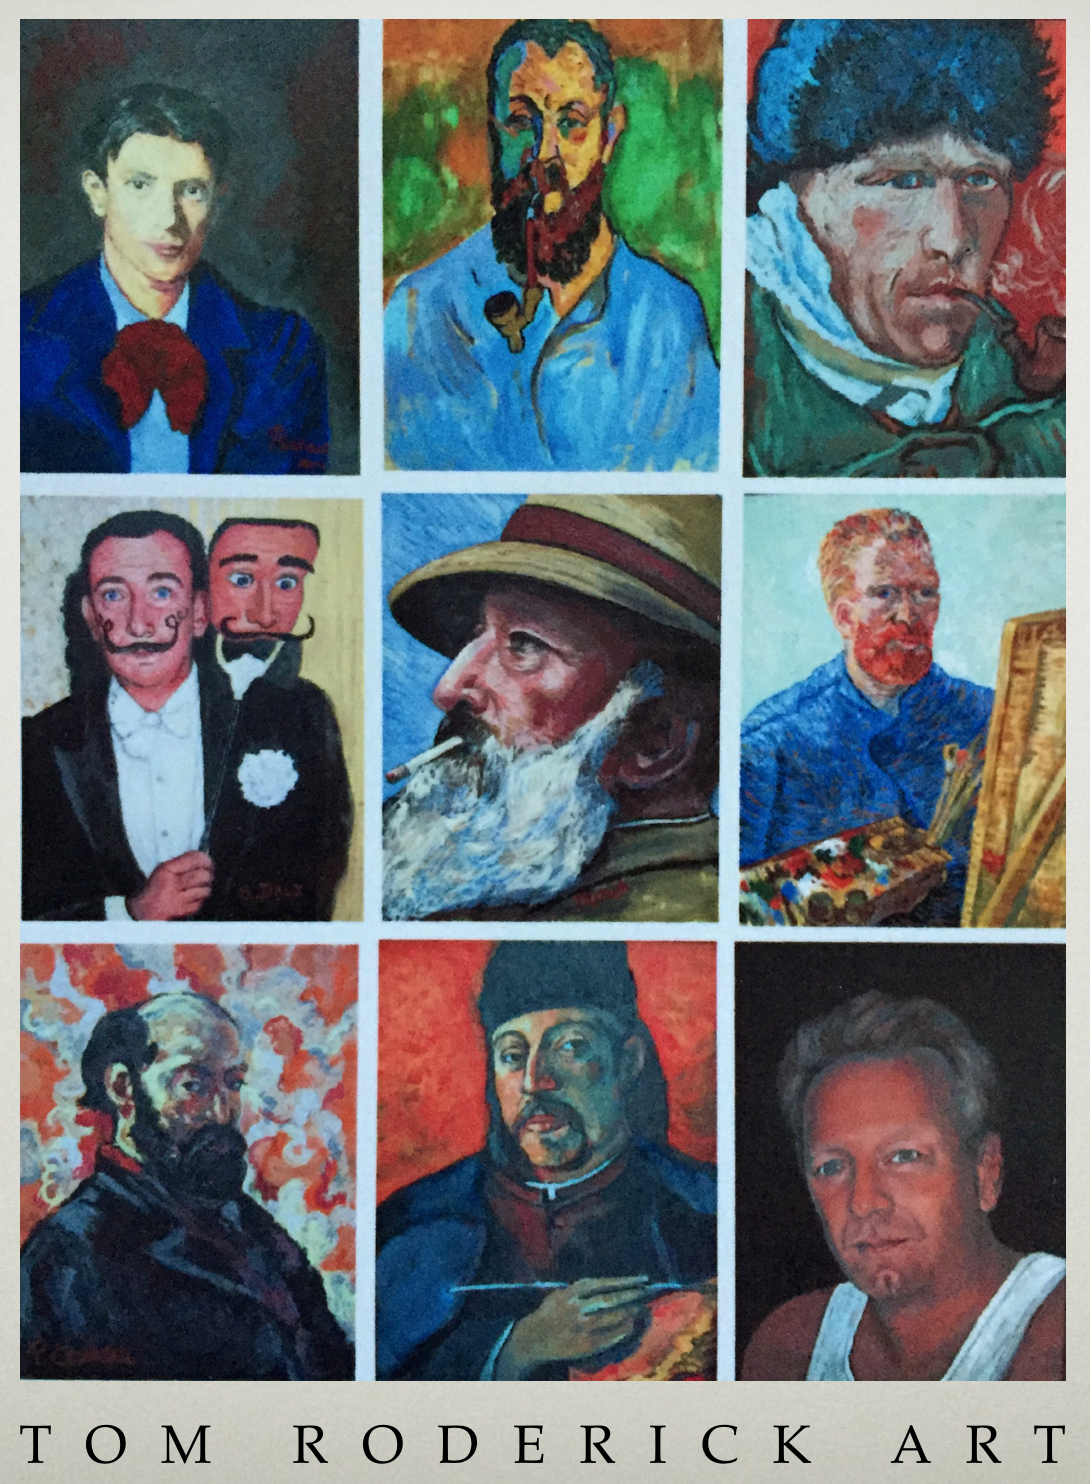 Portrait art by Boulder artist Tom Roderick